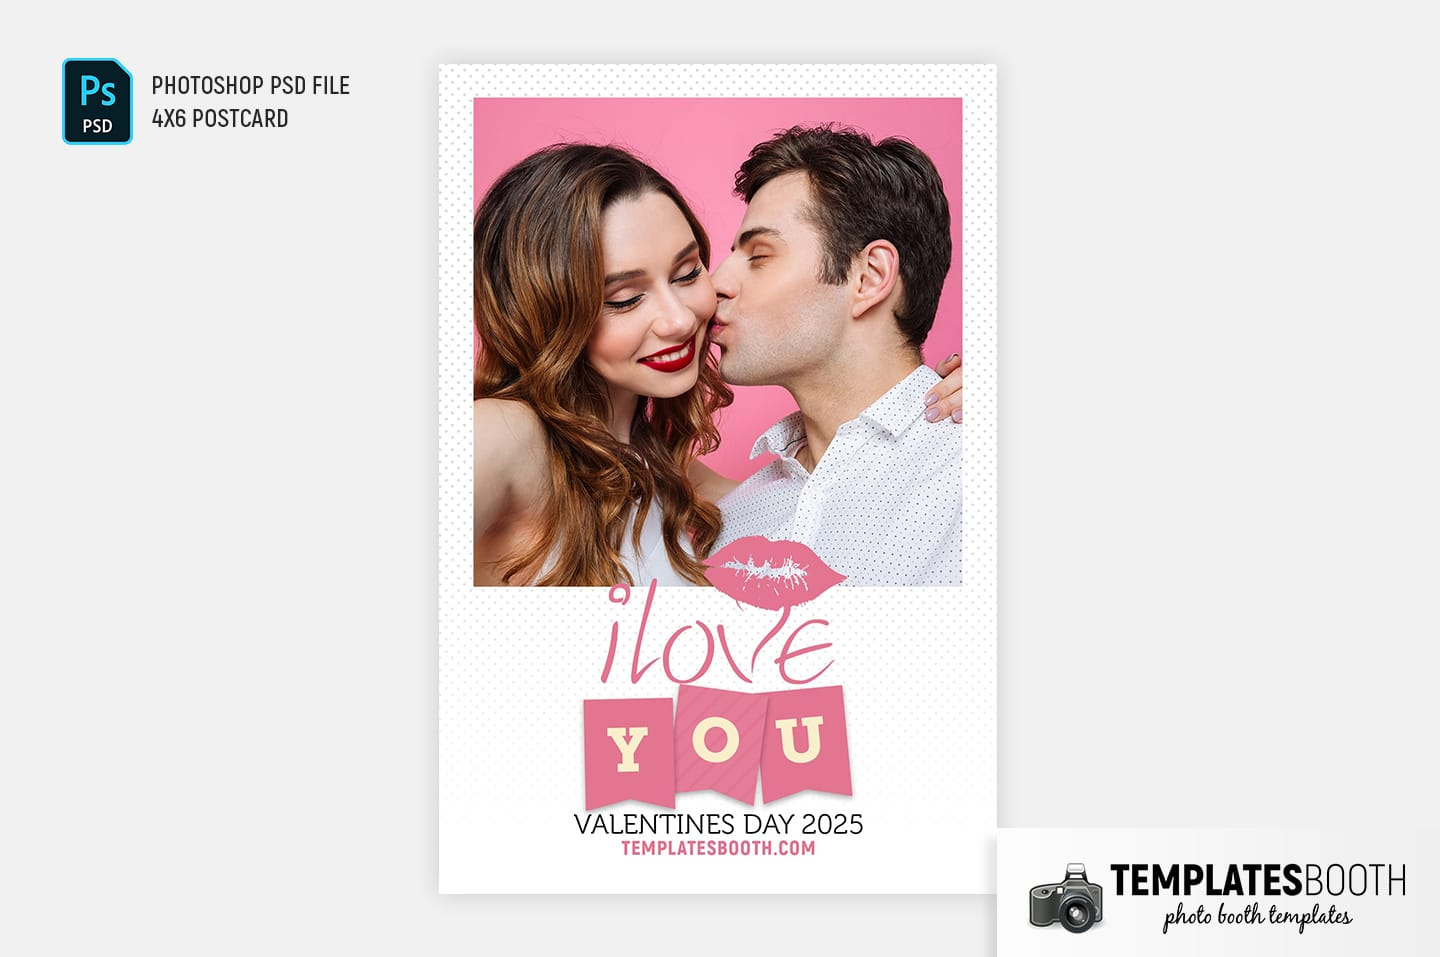 Valentines Kiss Photo Booth Template (4x6 postcard portrait)